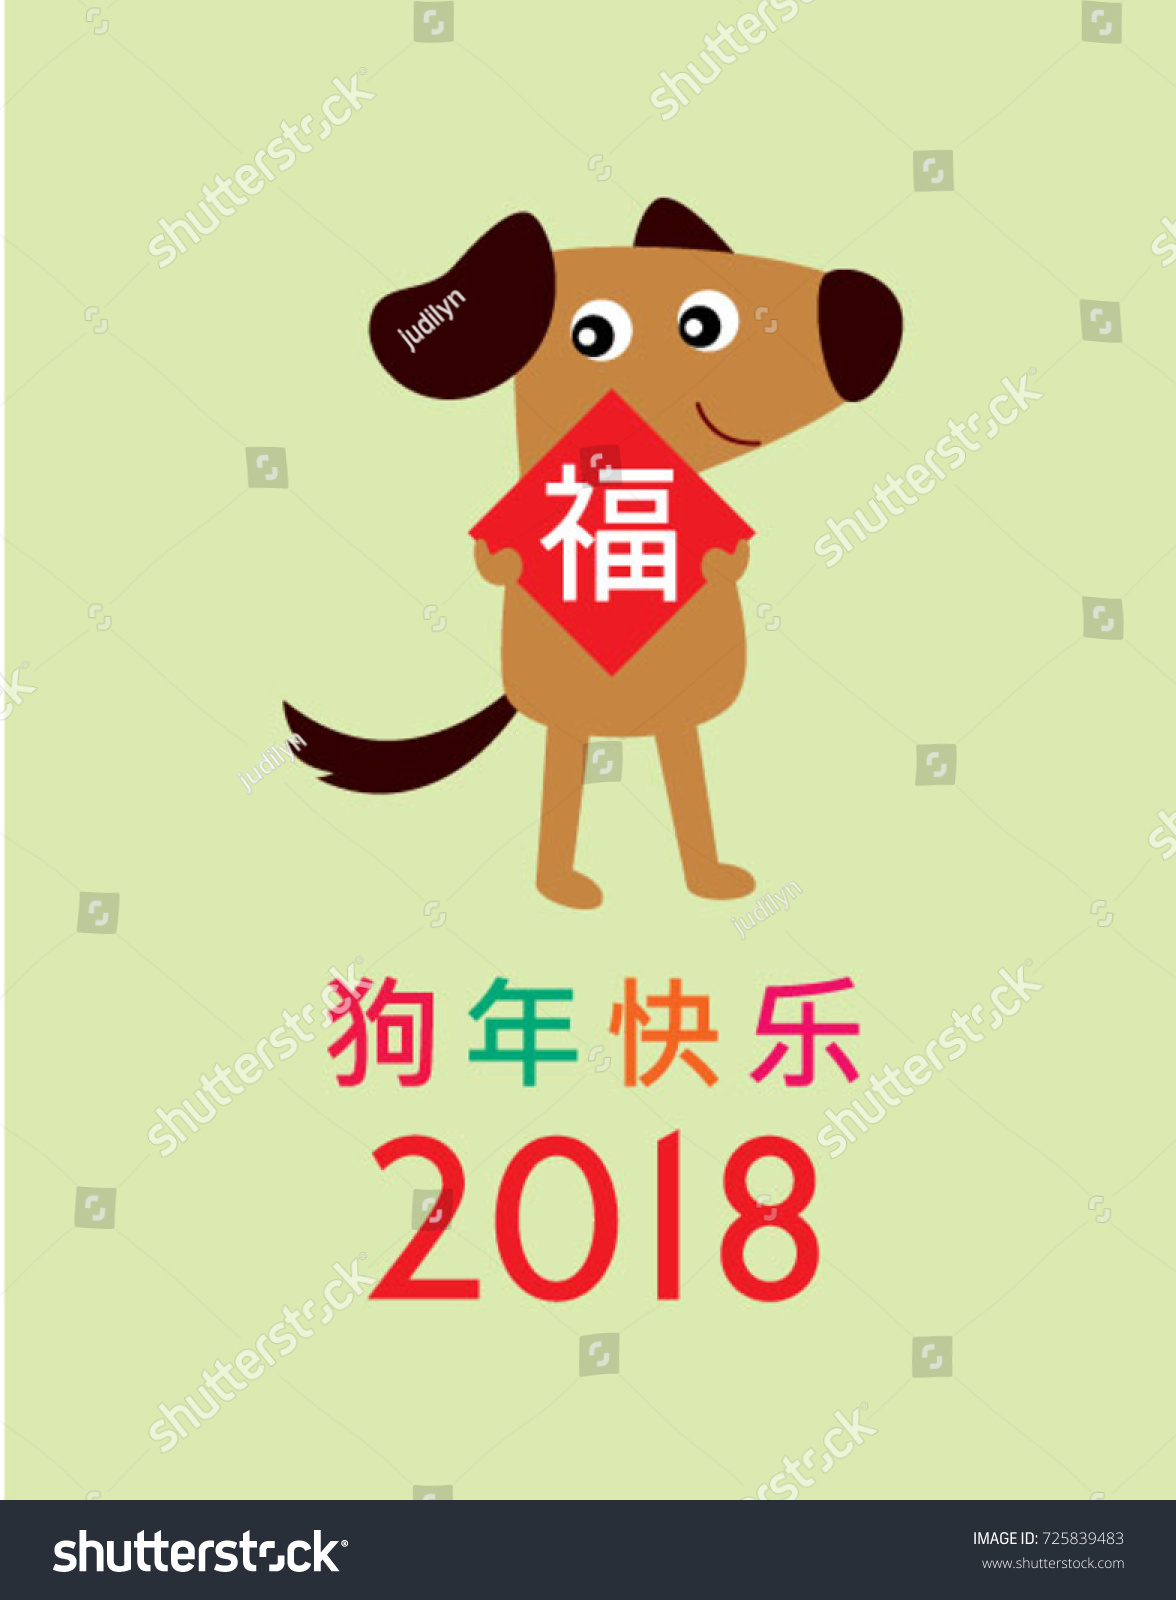 Chinese new year 2018 greeting dog stock vector 725839483 shutterstock chinese new year 2018 greeting with dog graphic and chinese word of blessing m4hsunfo Image collections